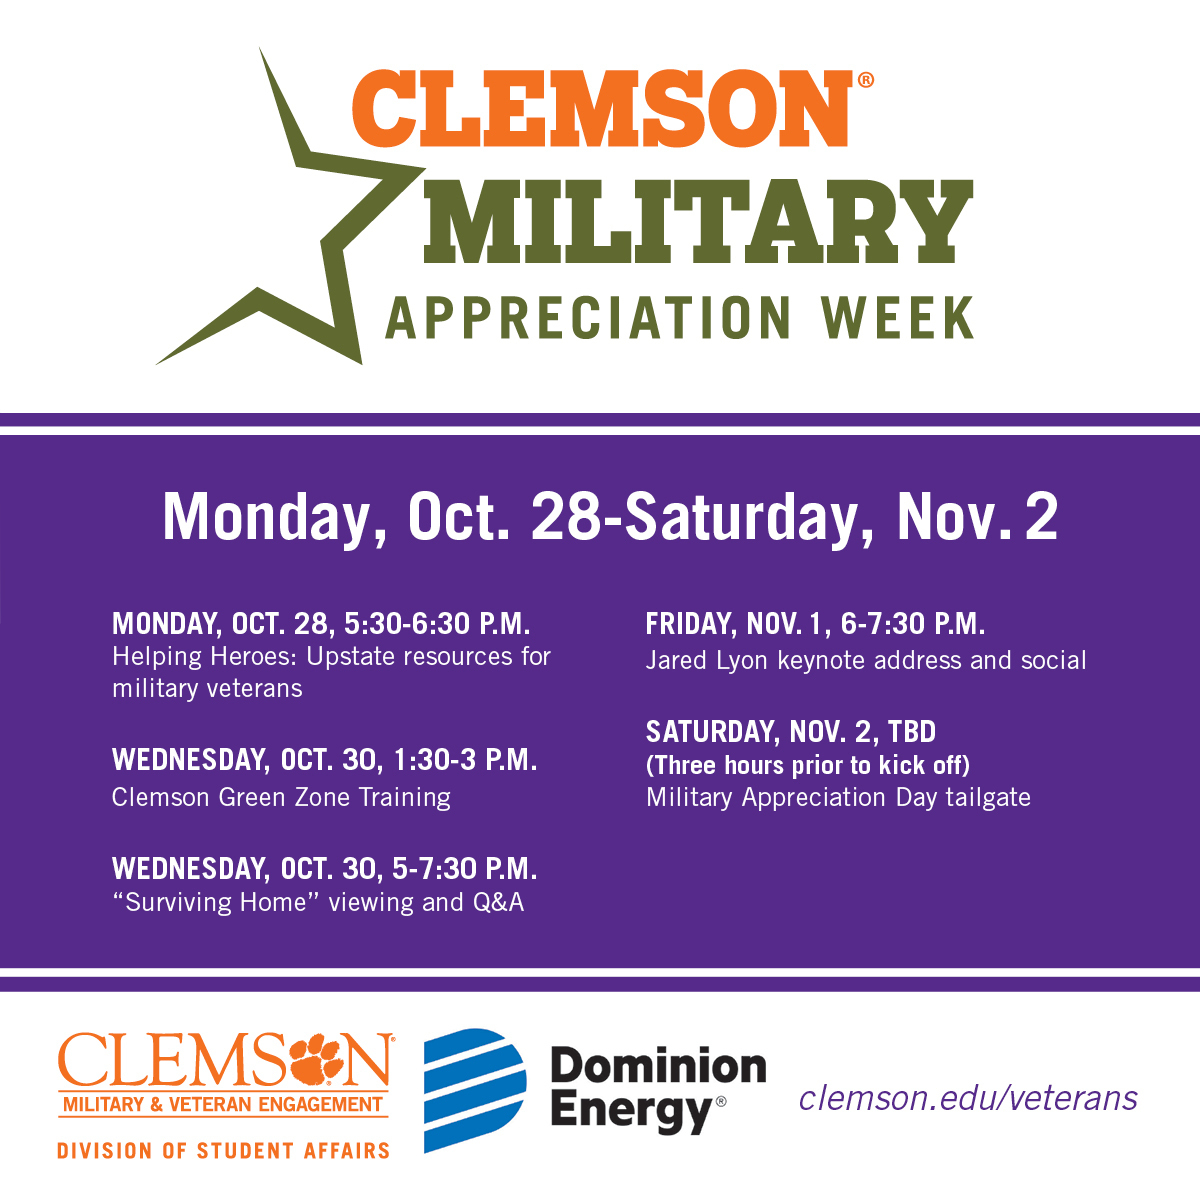 """Clemson Military Appreciation Week. Mon Oct 28- Sat Nov 2. Monday, October 28, 5:30-6:30 pm. Helping Heroes: Upstate Resources for military veterans. Wednesday, October 30, 1:30-3pm. Clemson Green Zone Training. Wednesday, Oct 30, 5-7:30pm. """"Surviving Home"""" viewing and Q&A. Friday Nov 1, 6-7:30pm. Jared Lyon keynote address and social. Saturday, Nov 2, TBD. Three hours prior to kickoff. Military Appreciation Day Tailgate. Clemson Military and Veteran Engagement A Division of Student Affairs. Sponsored by Dominion Energy. Clemson.edu/veterans"""